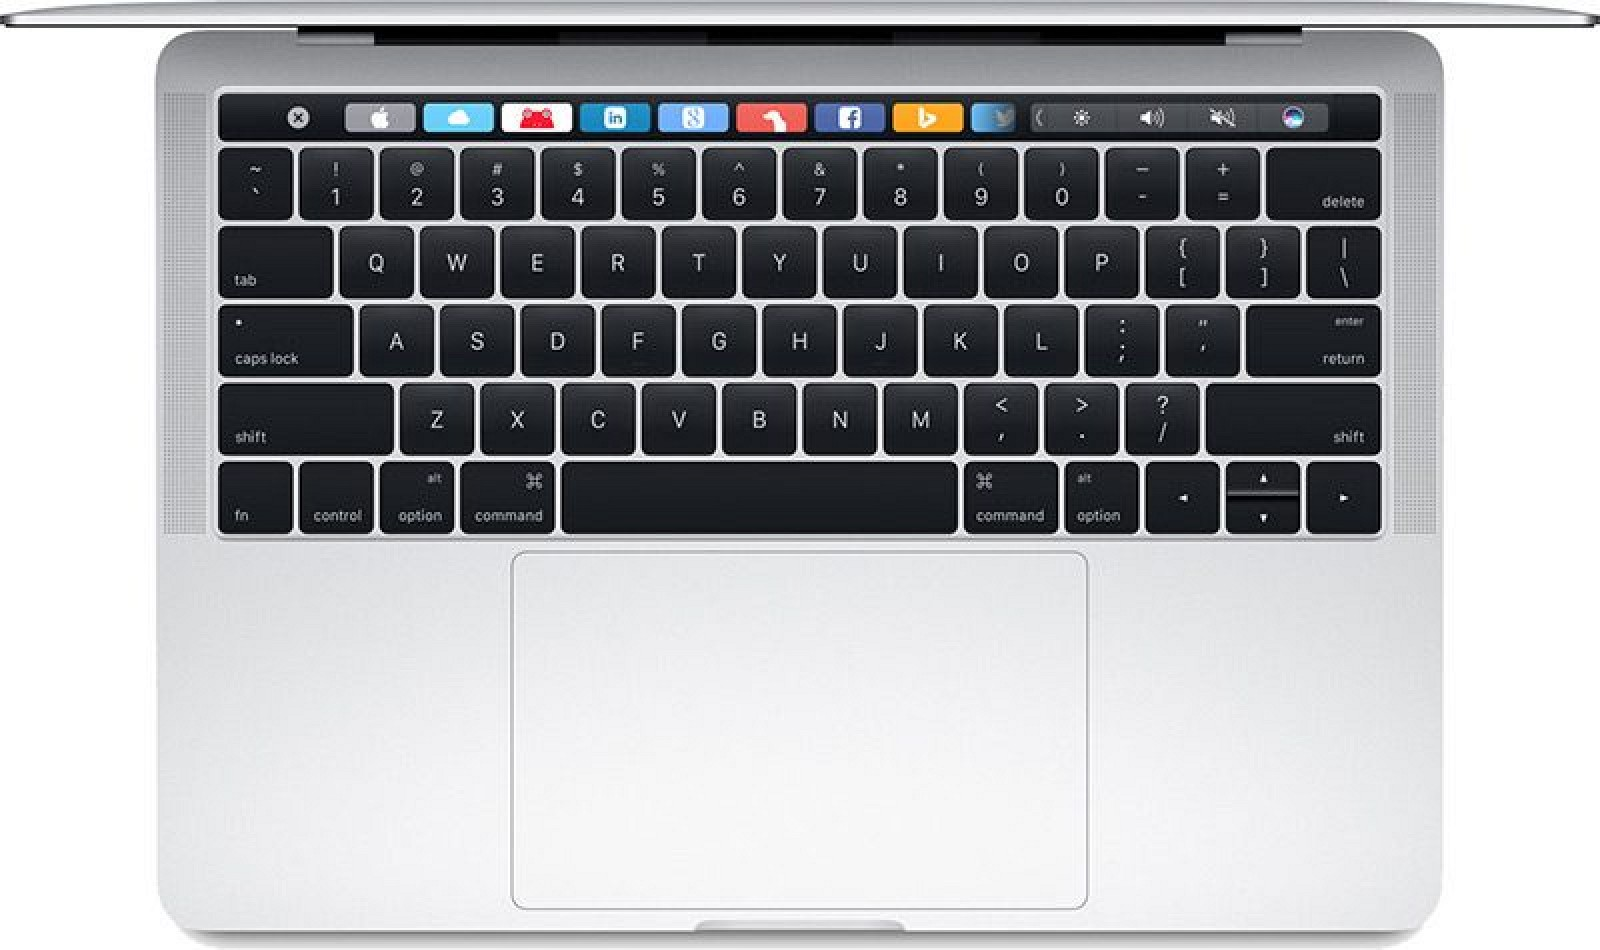 9bc6201ae86 MacBook Pro / Air Butterfly Keyboard Issues (Repeating, Stuck,  Unresponsive) - MacRumors